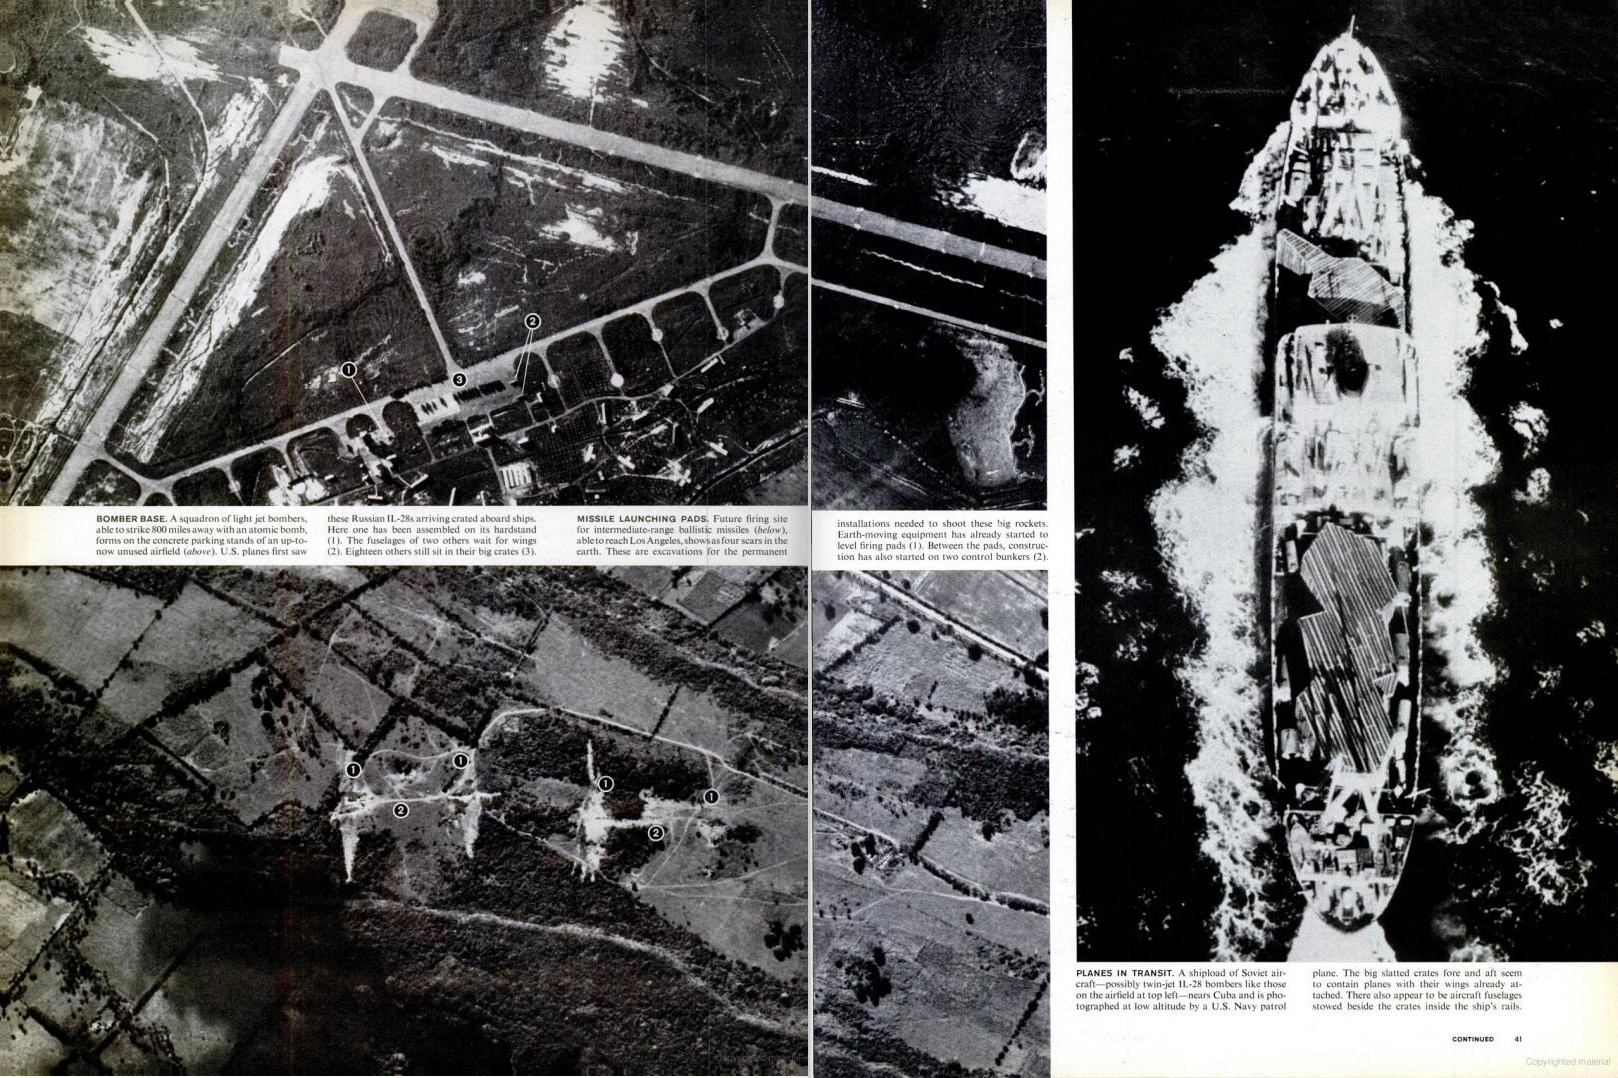 November 2, 1962 issue of LIFE magazine. Spread shows more Soviet missiles and a Soviet ship carrying aircraft.